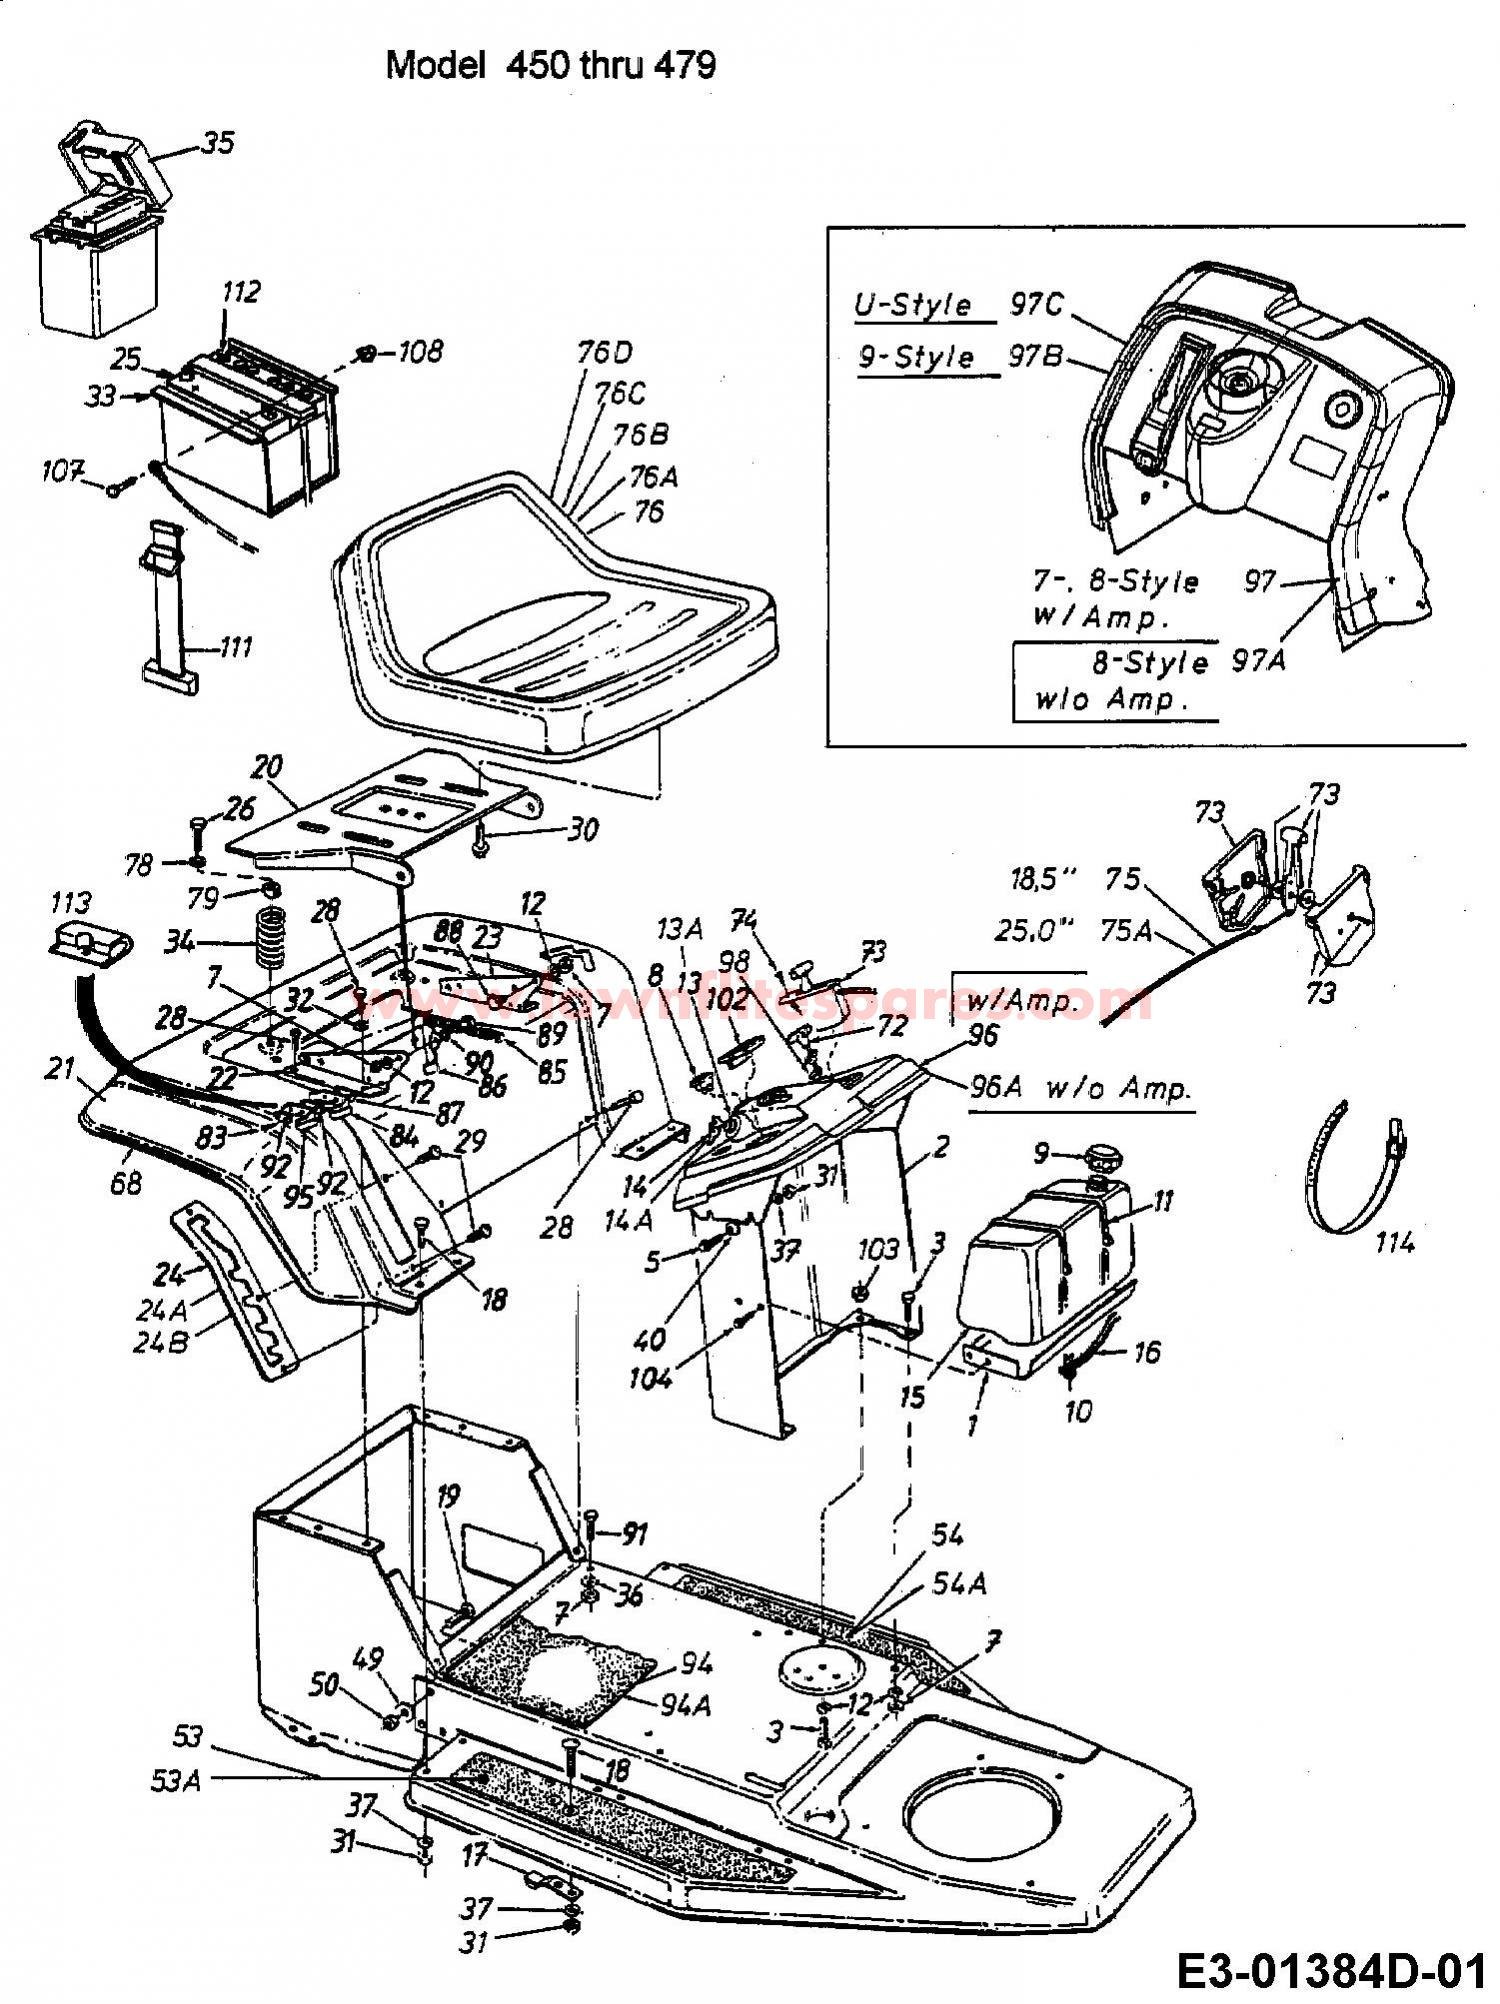 john deere mower wiring diagram john discover your wiring l4200 kubota parts diagram john deere